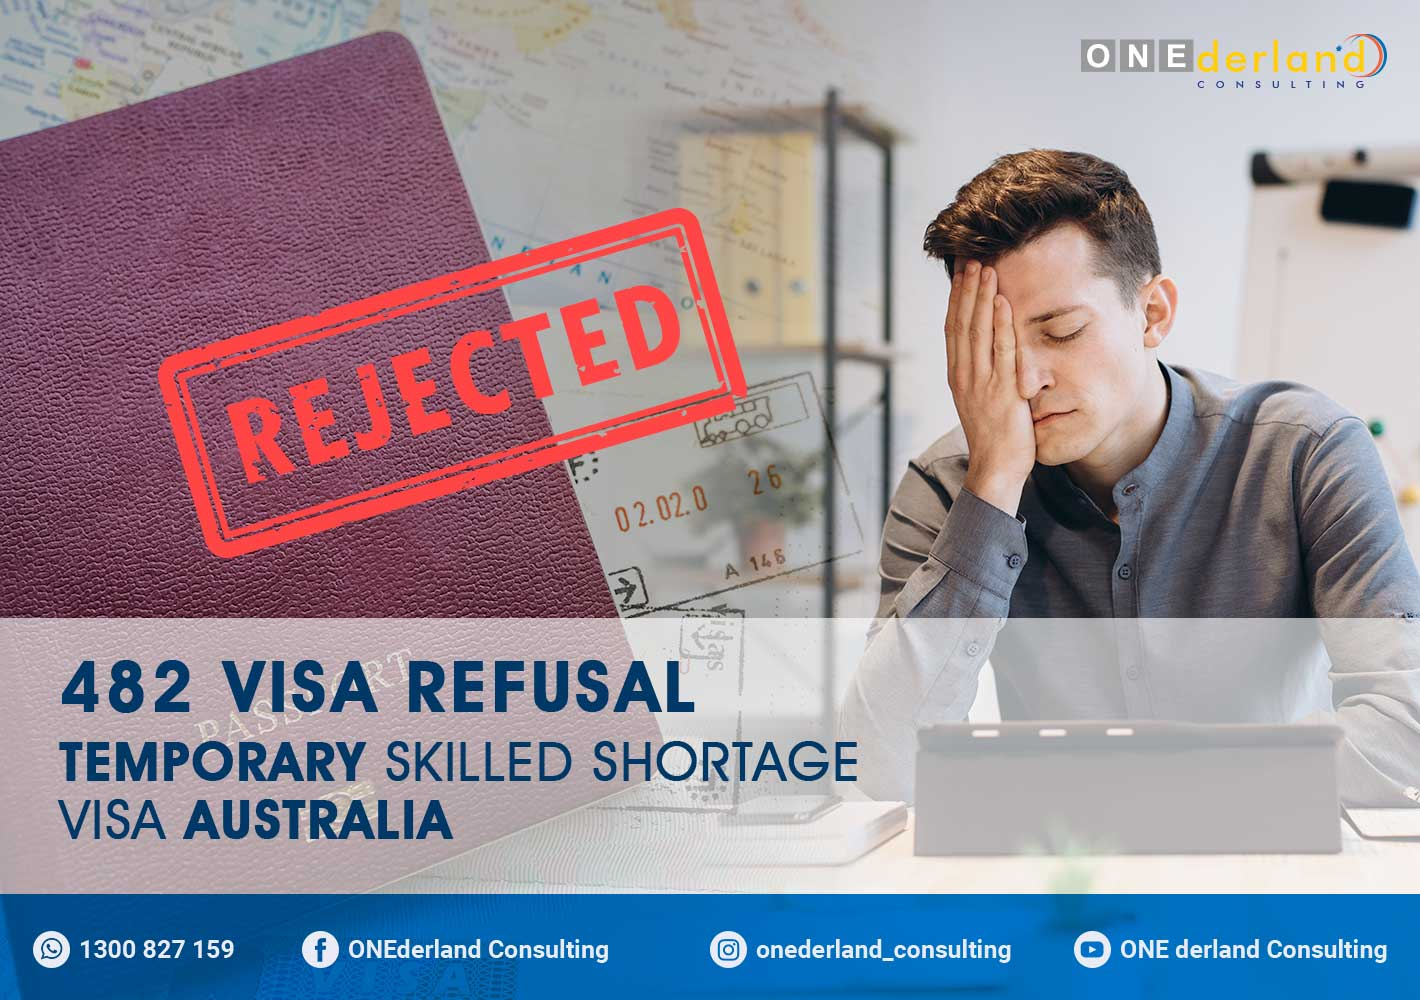 482 Visa Refusal – Temporary Skilled Shortage Visa Australia